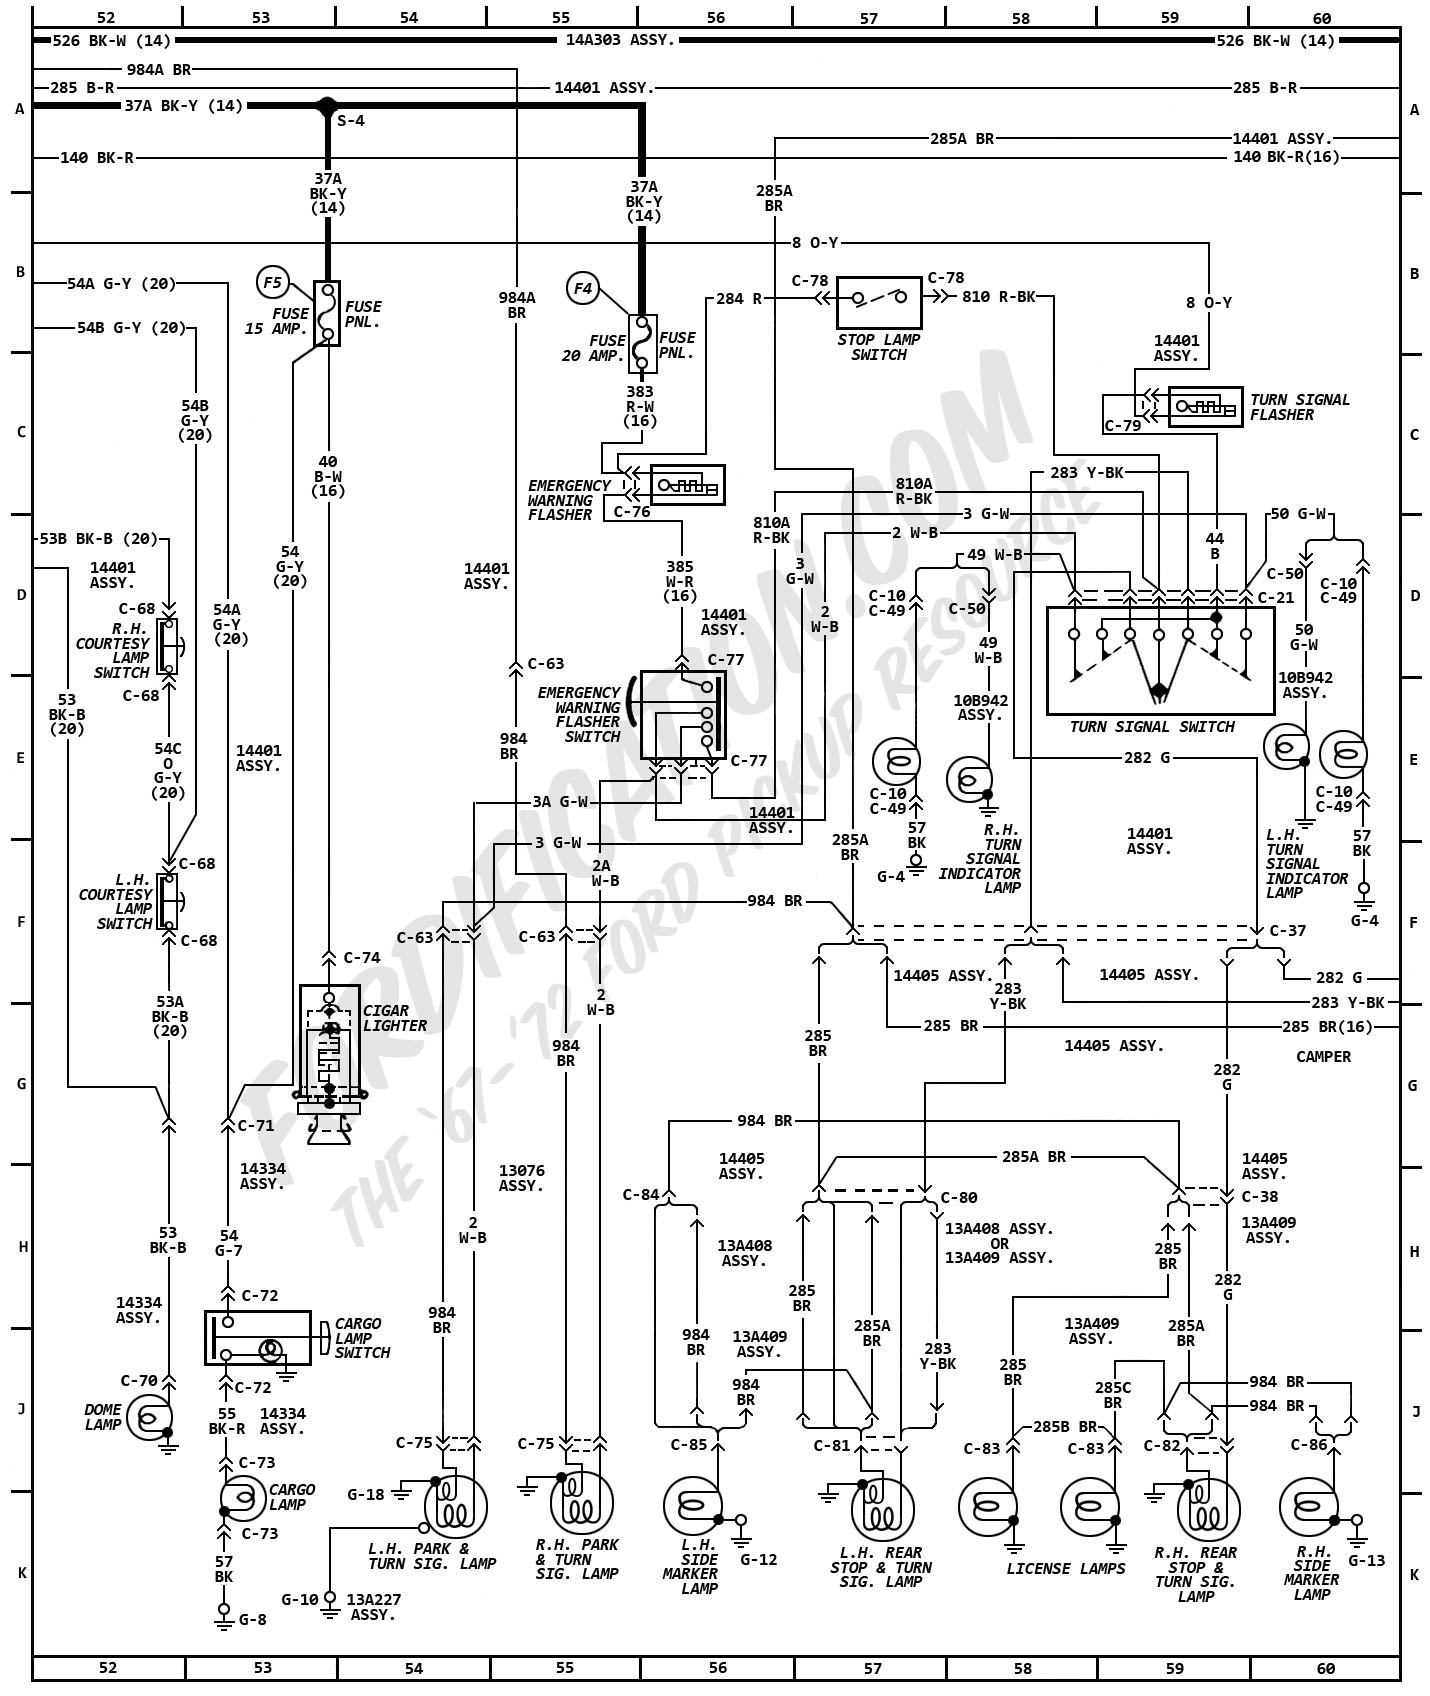 1953 Ford F100 Wiring Diagram on 72 f100 custom